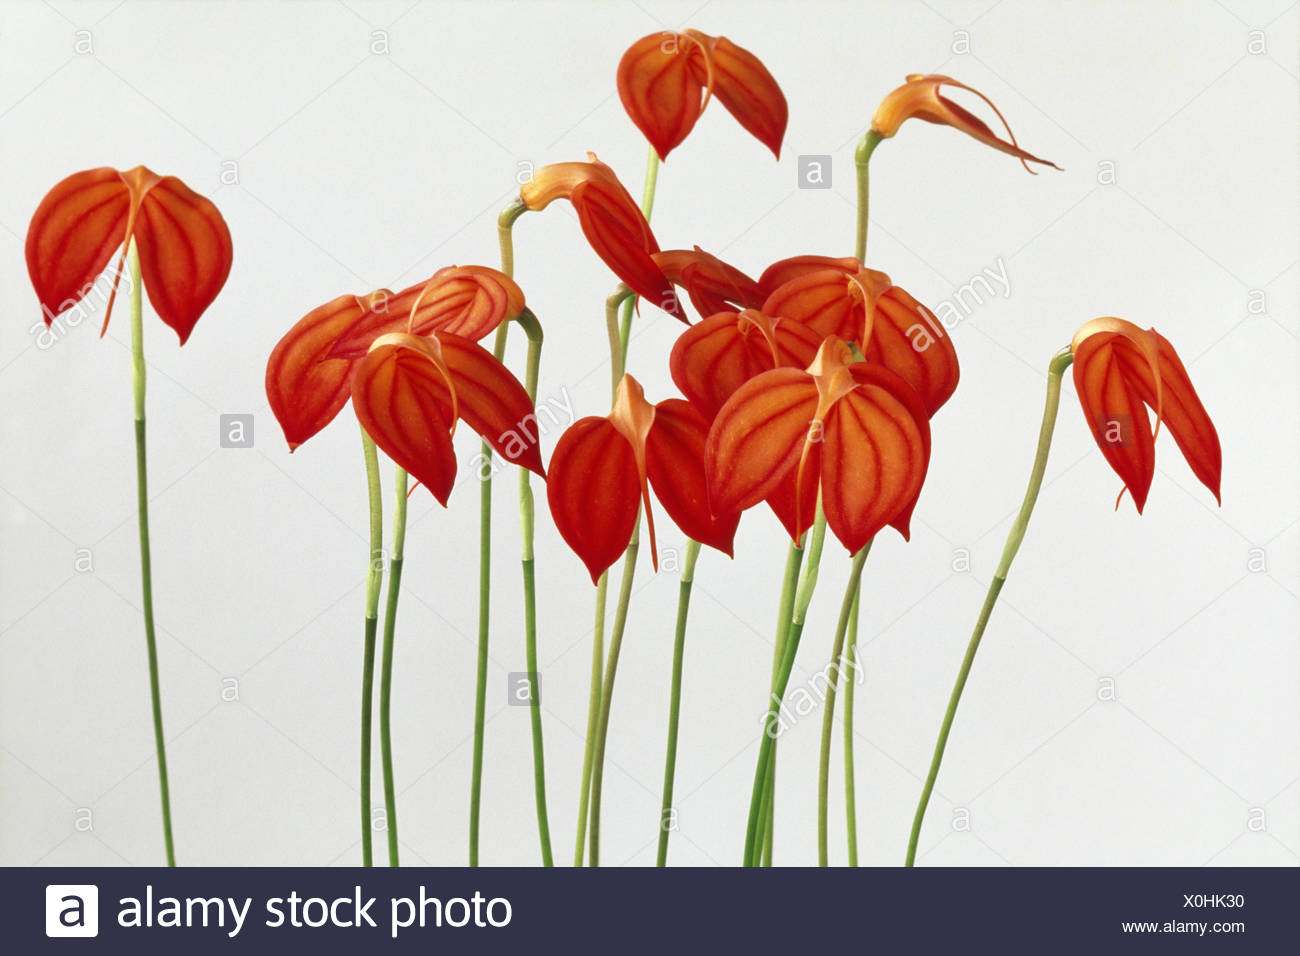 Orchid Masdevallia ignea a flower with red petals and straight stems Stock Photo